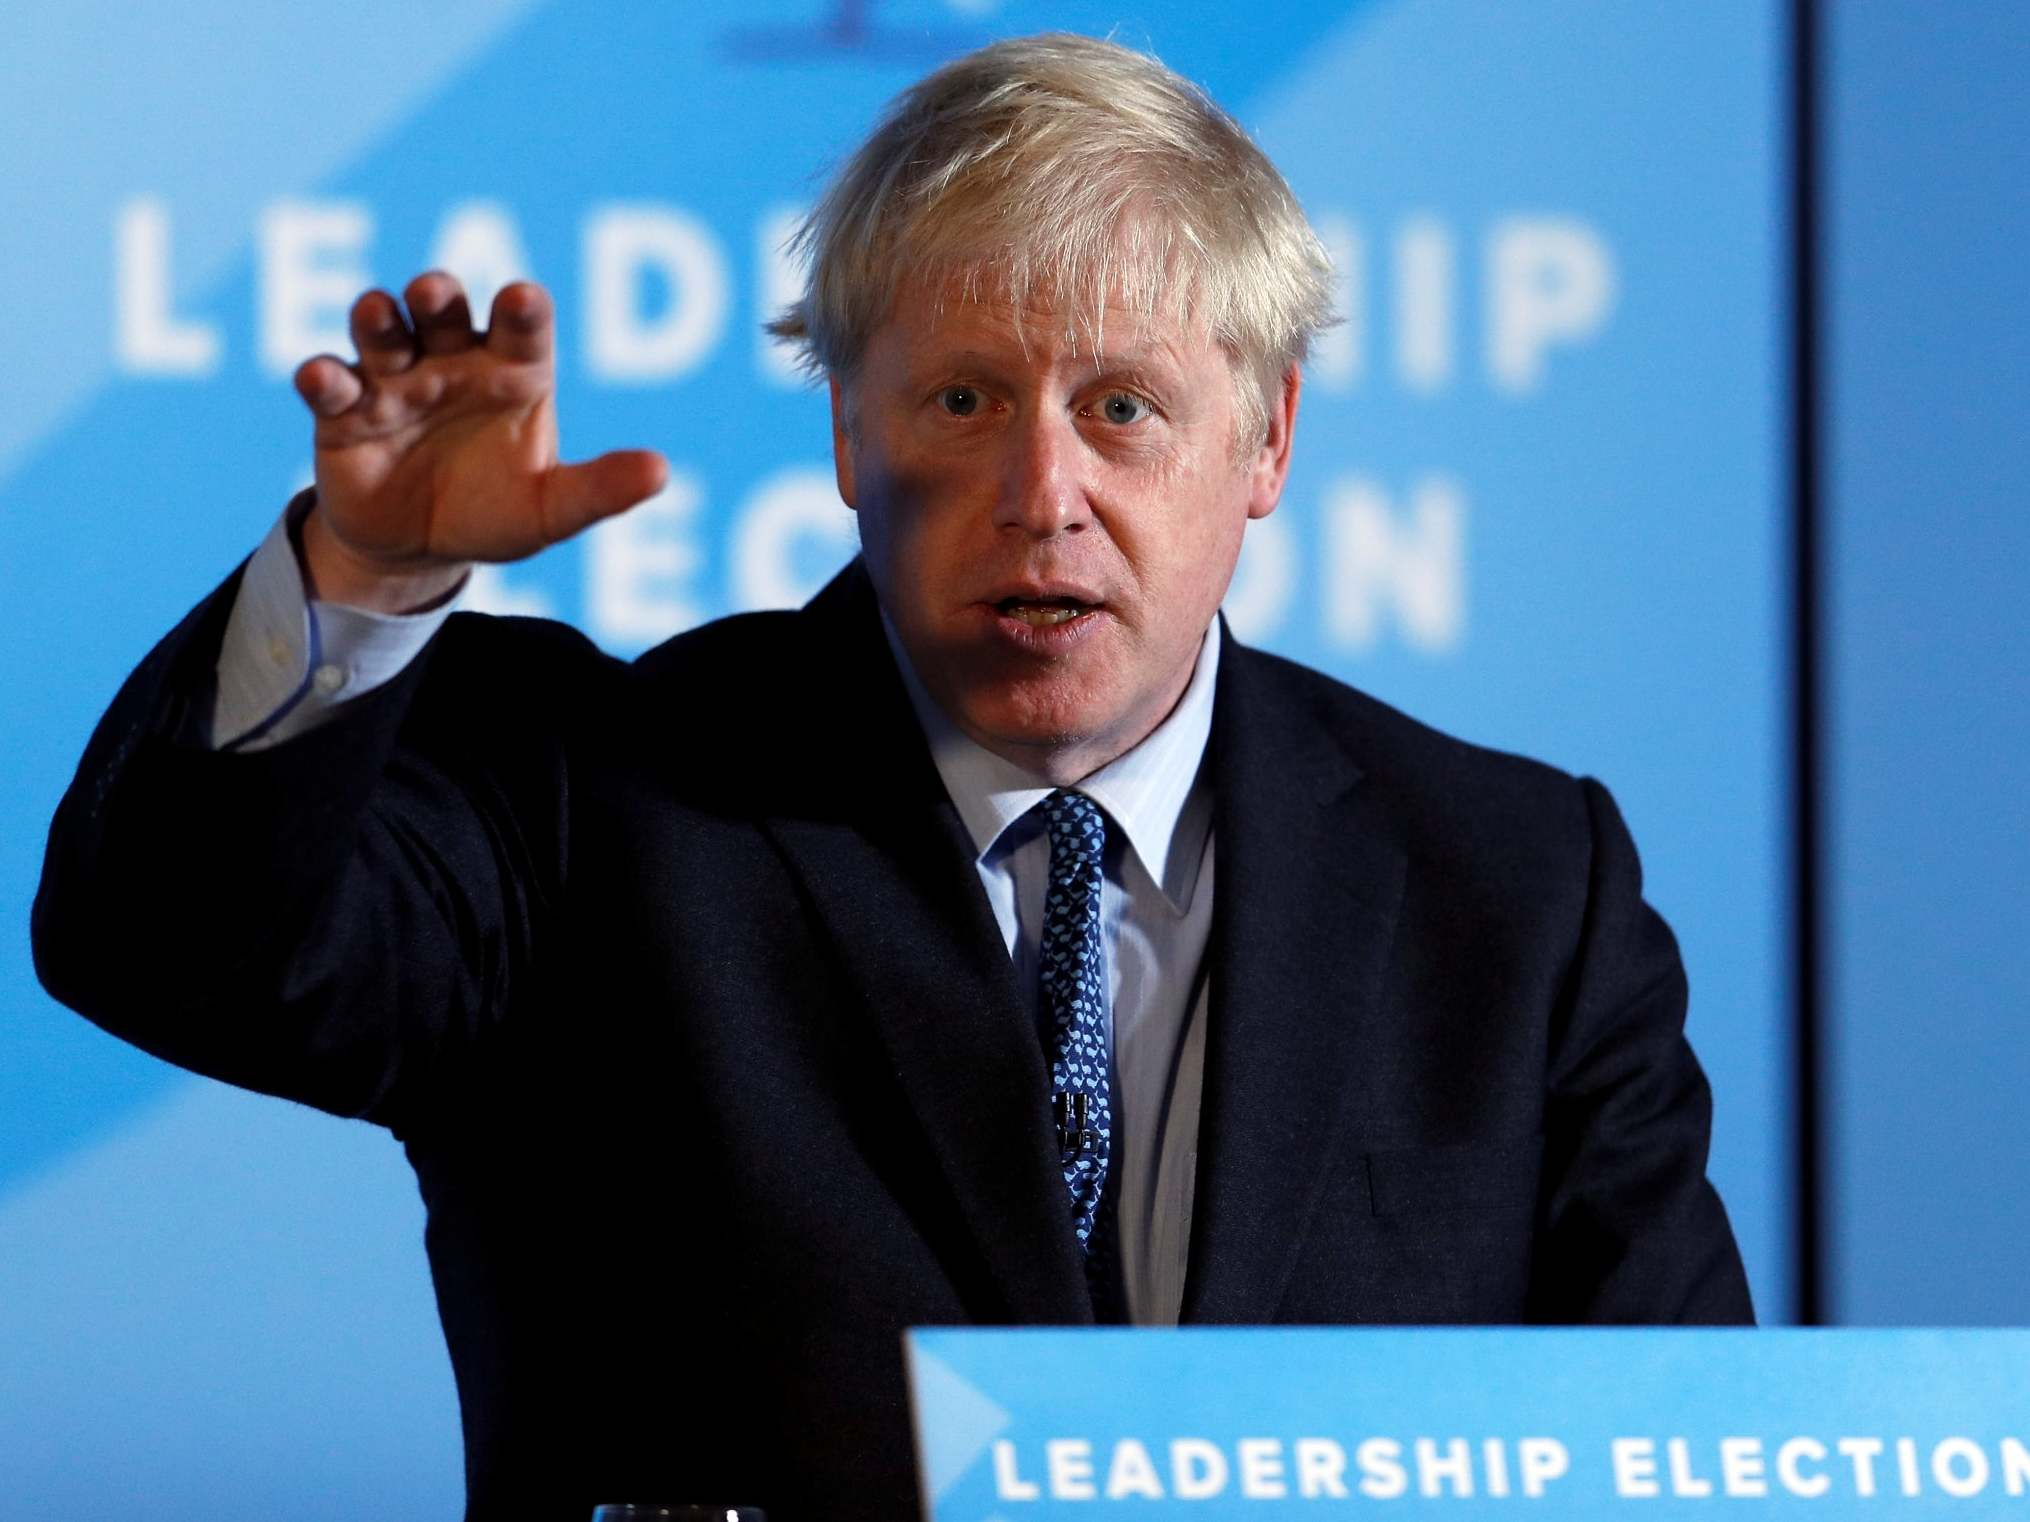 Tory leadership debate - live: Boris Johnson 'absolutely' rules out holding general election before Brexit happens